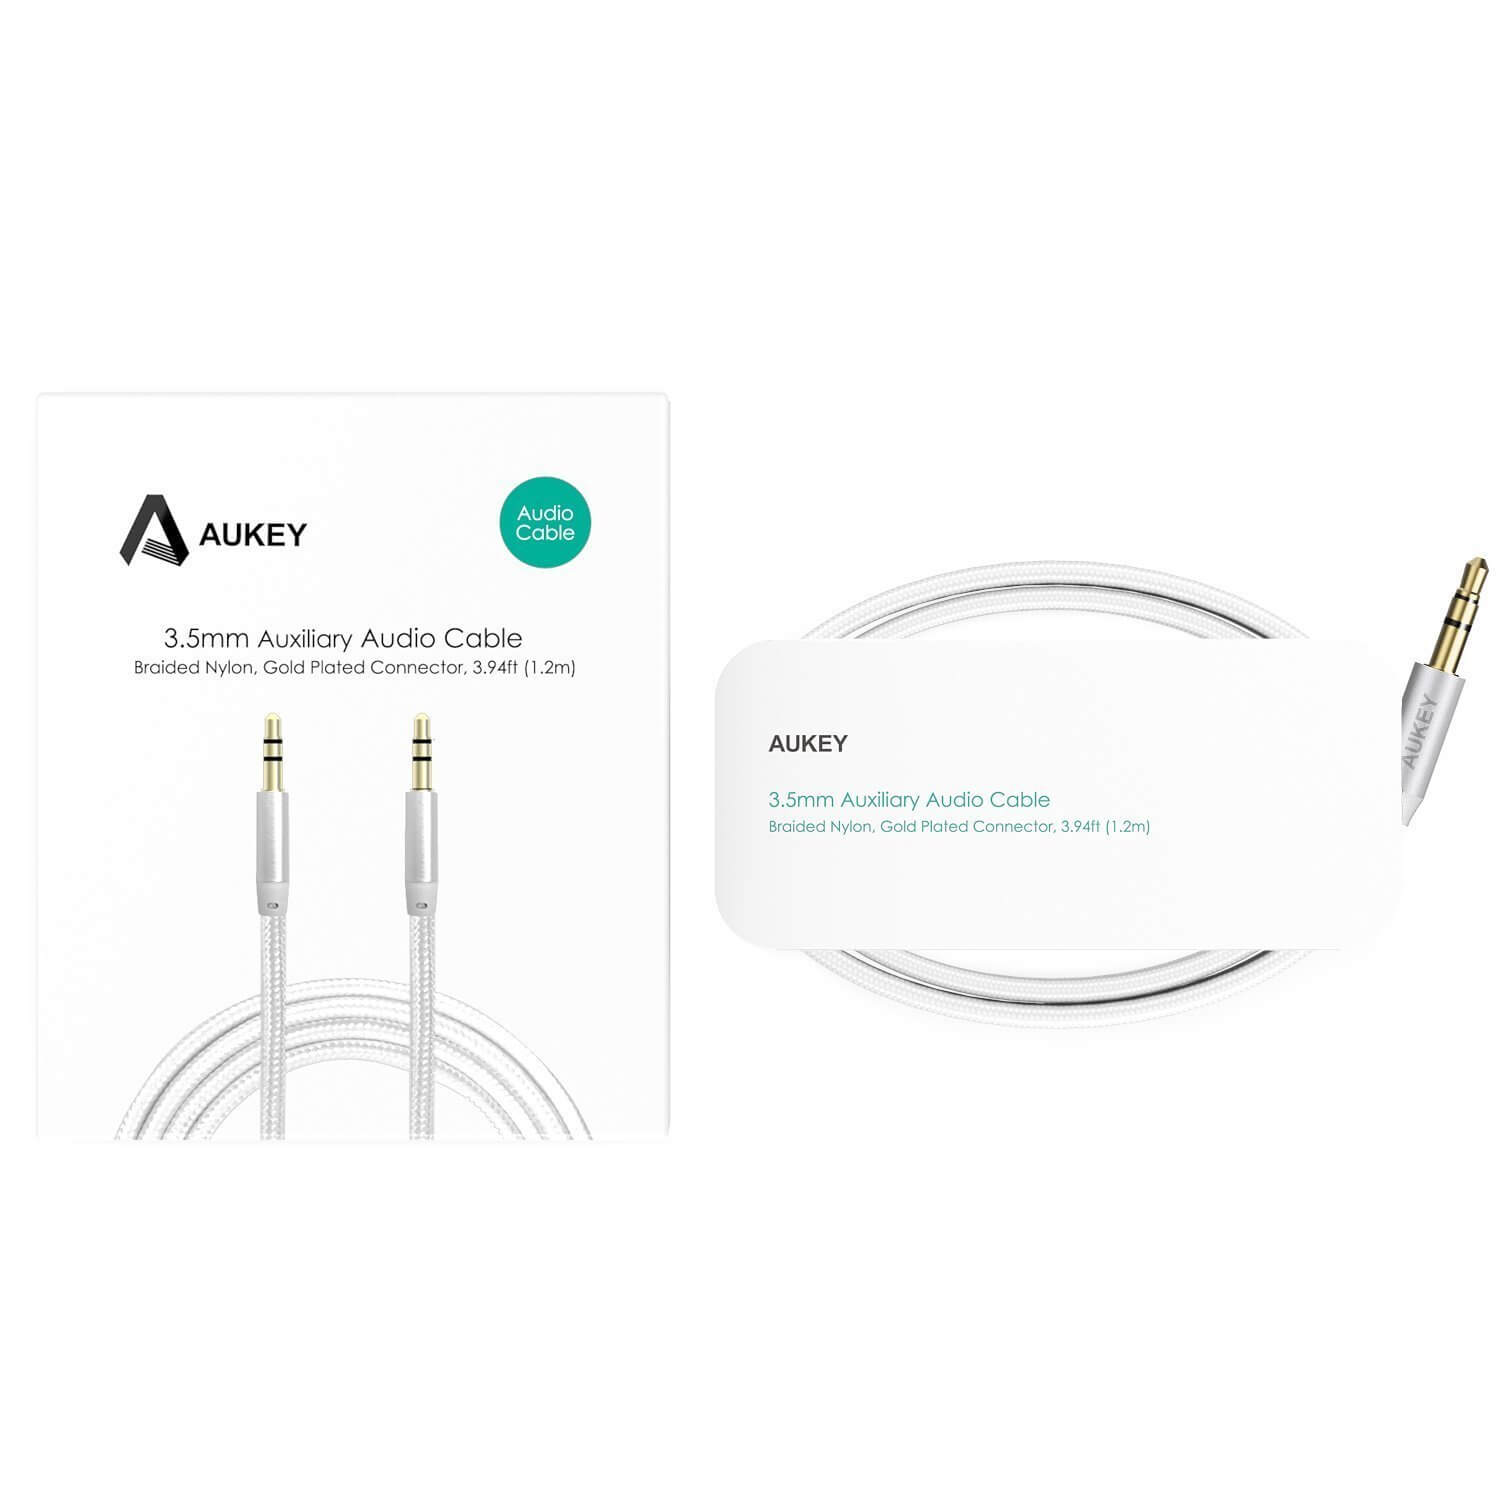 Aukey 3 5mm Auxiliary Audio Cable Braided Nylon 1 2m 3